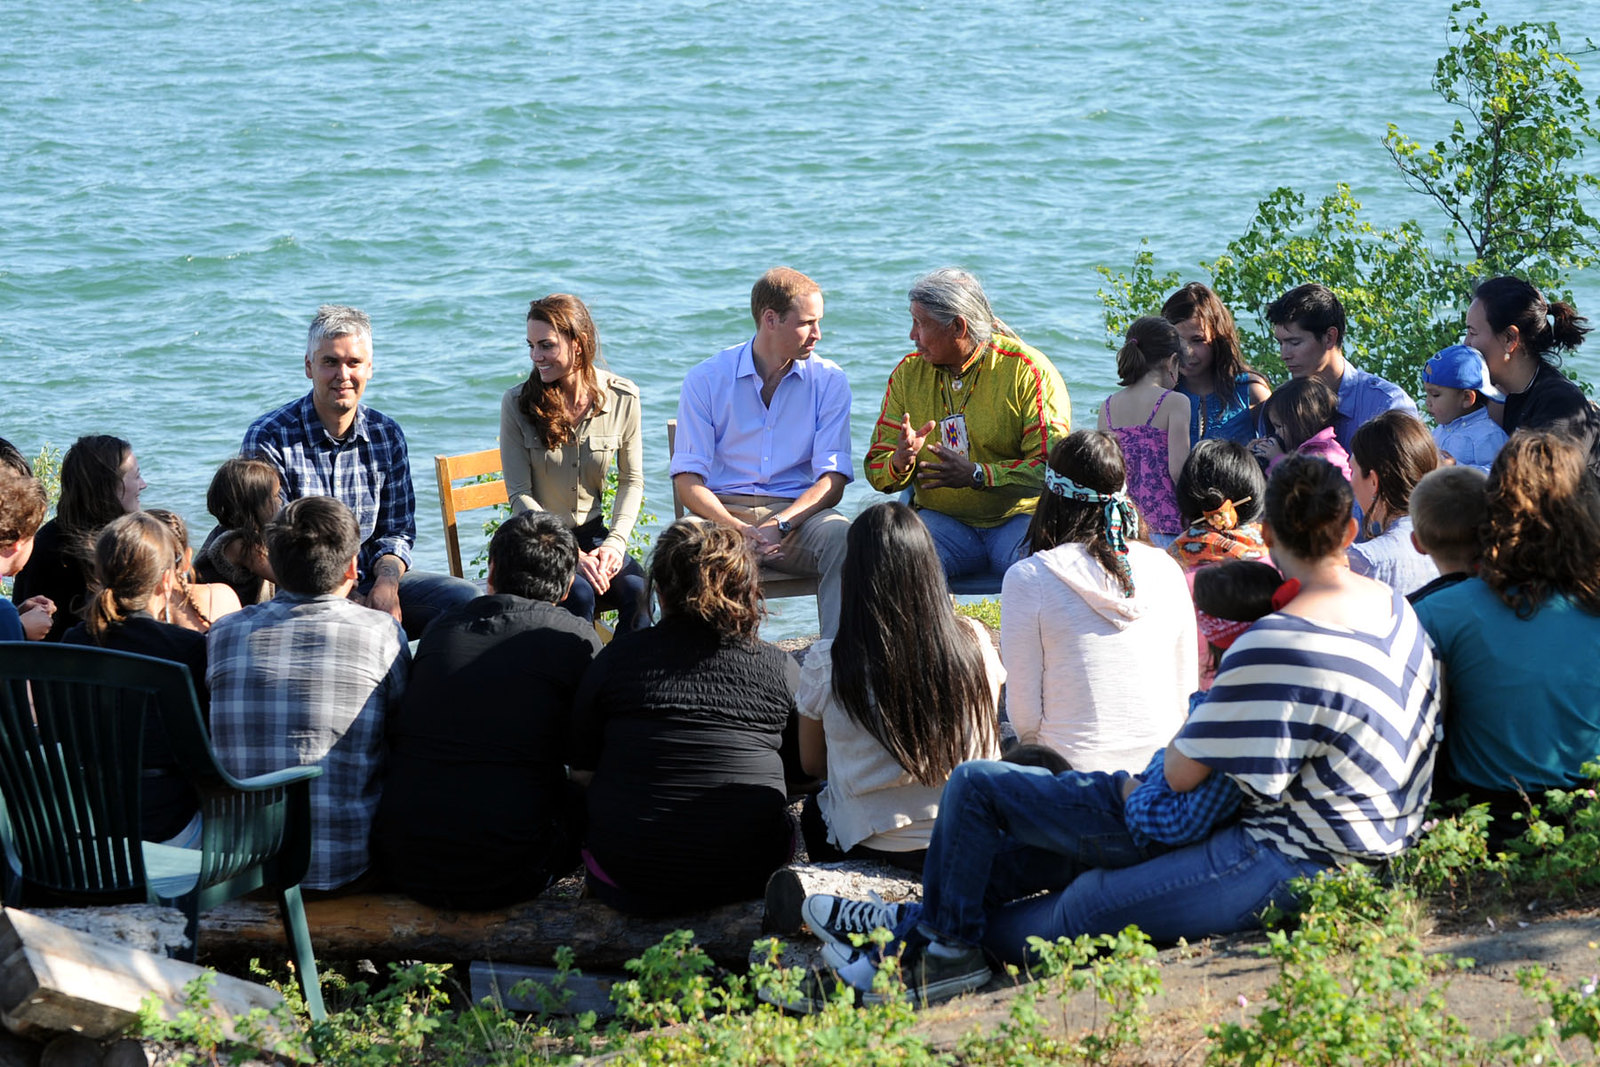 The duke and duchess of cambridge met with seniors during Blachford lake visit in 2011